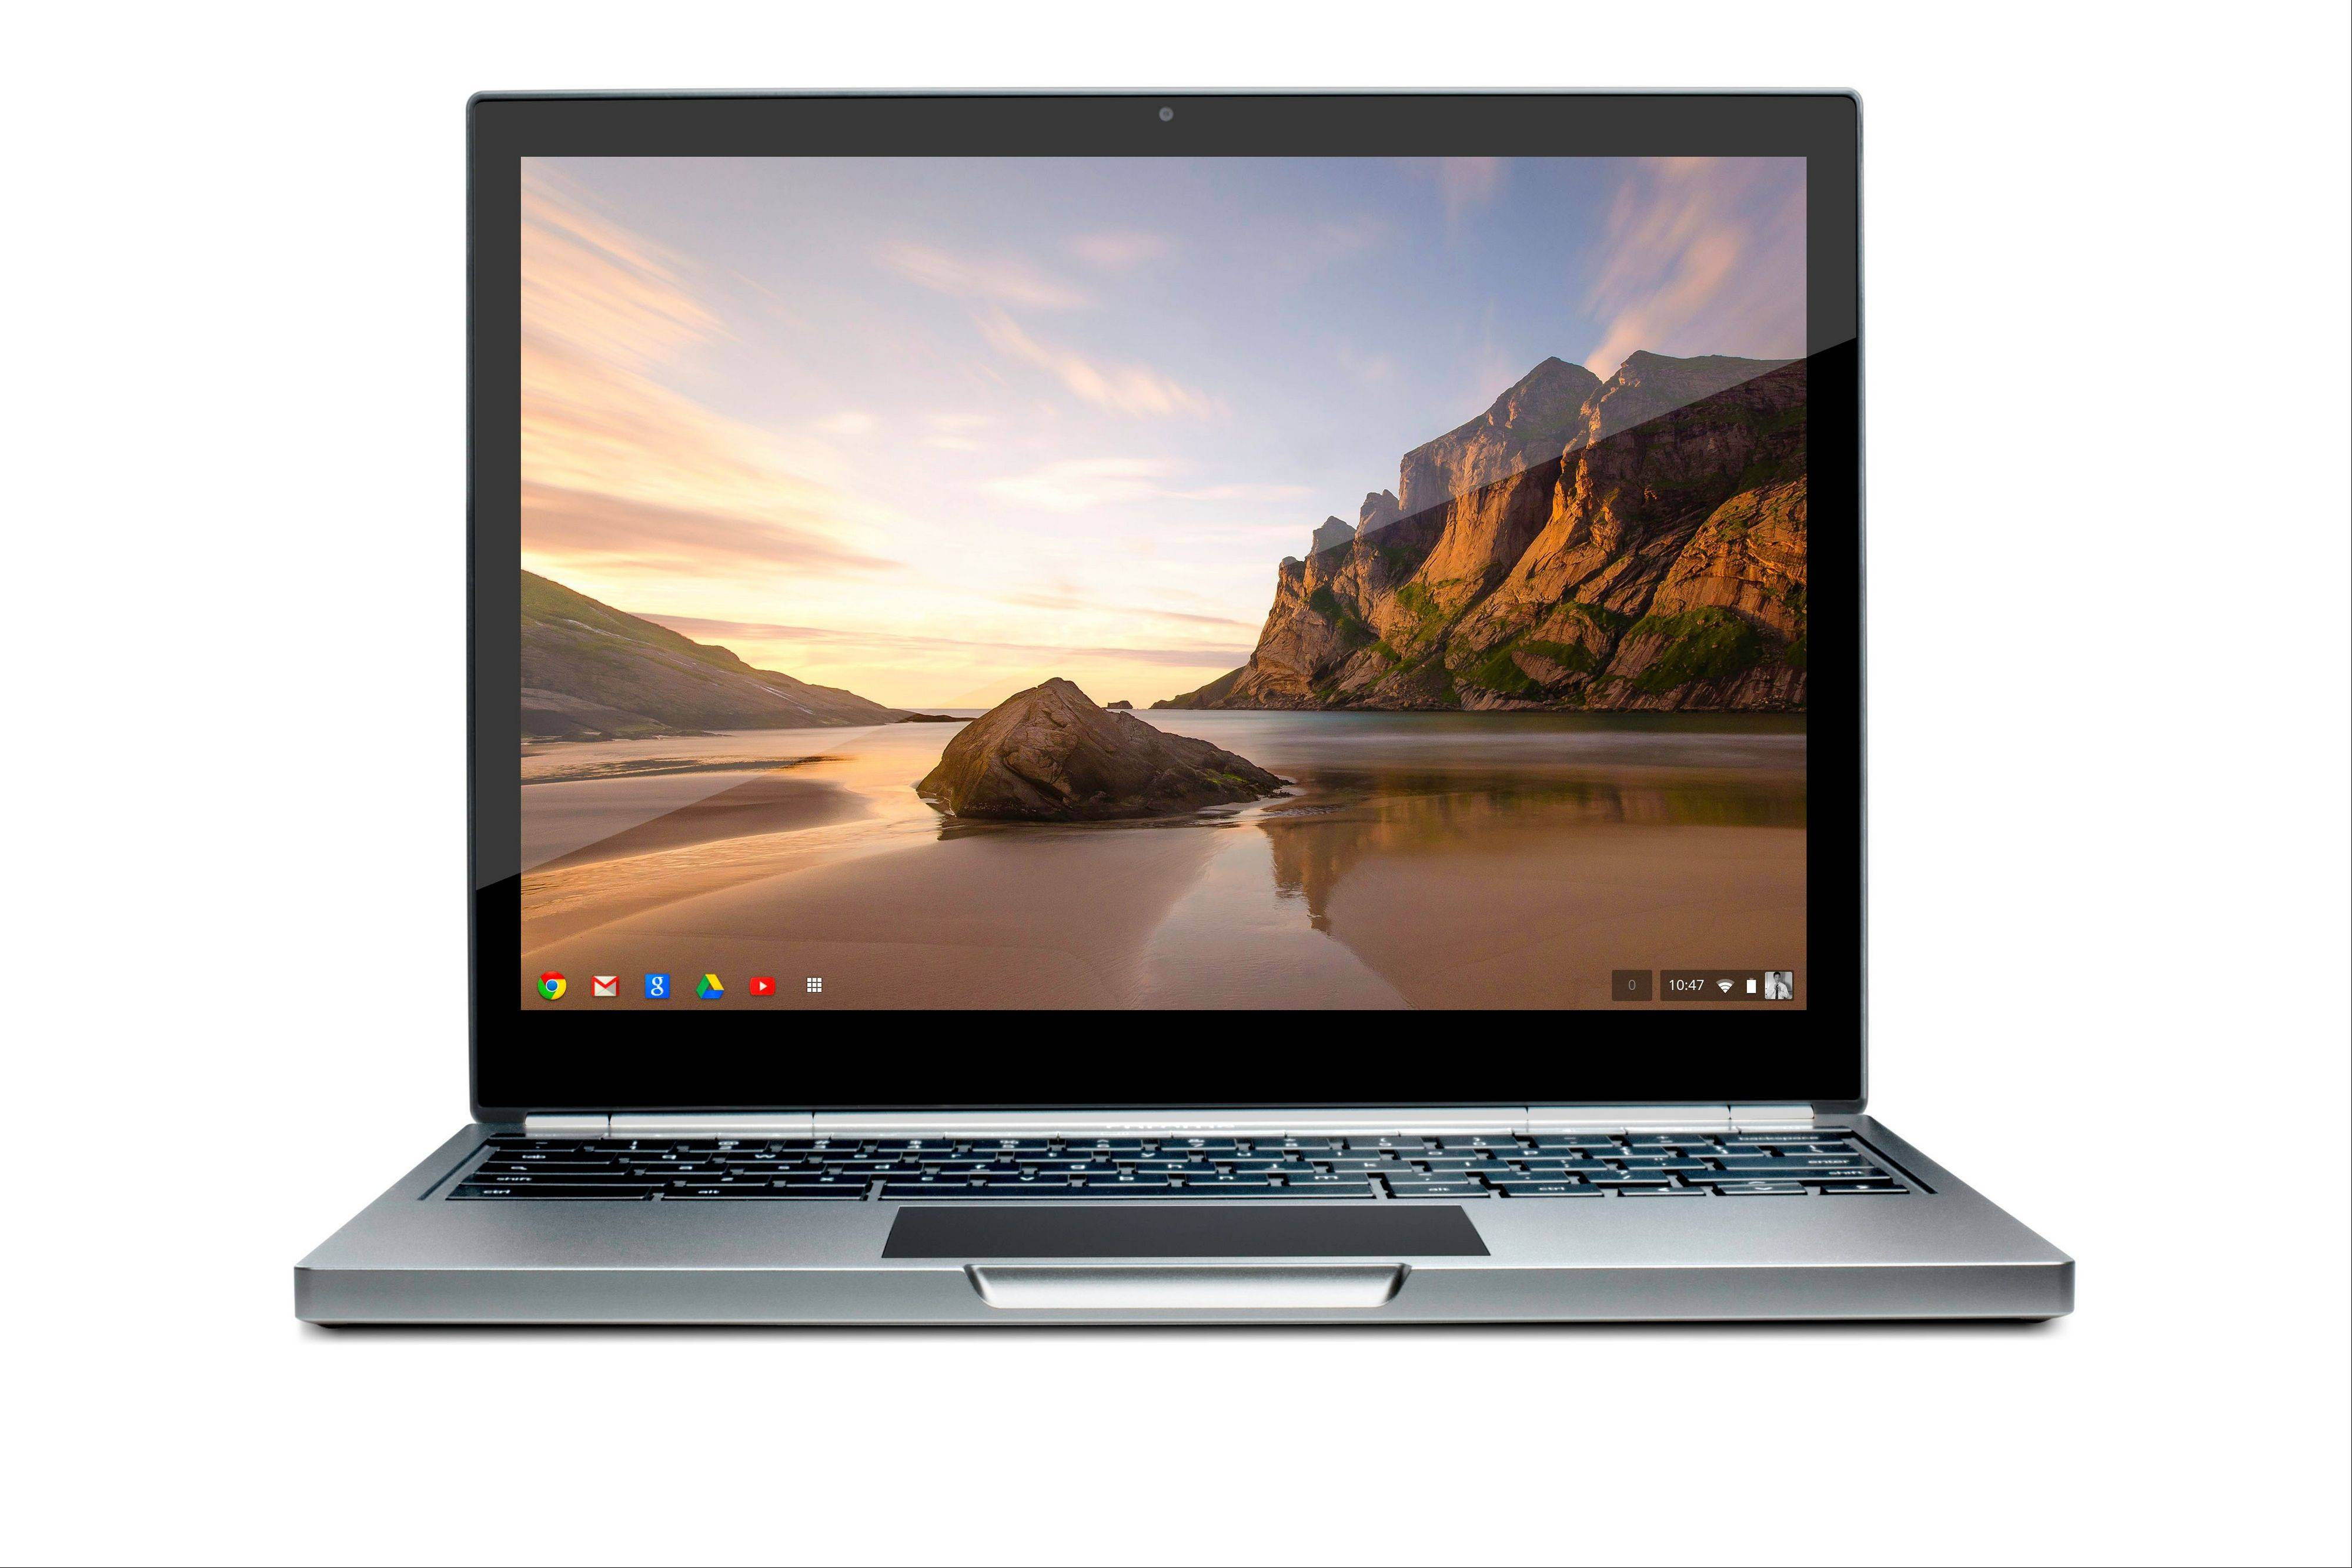 This image provided by Google shows the company's first high-end chromebook Pixel. According to a review by the Associated Press, the machine feels light and comfortable in my hands and its high-resolution display makes photos appear sharp.